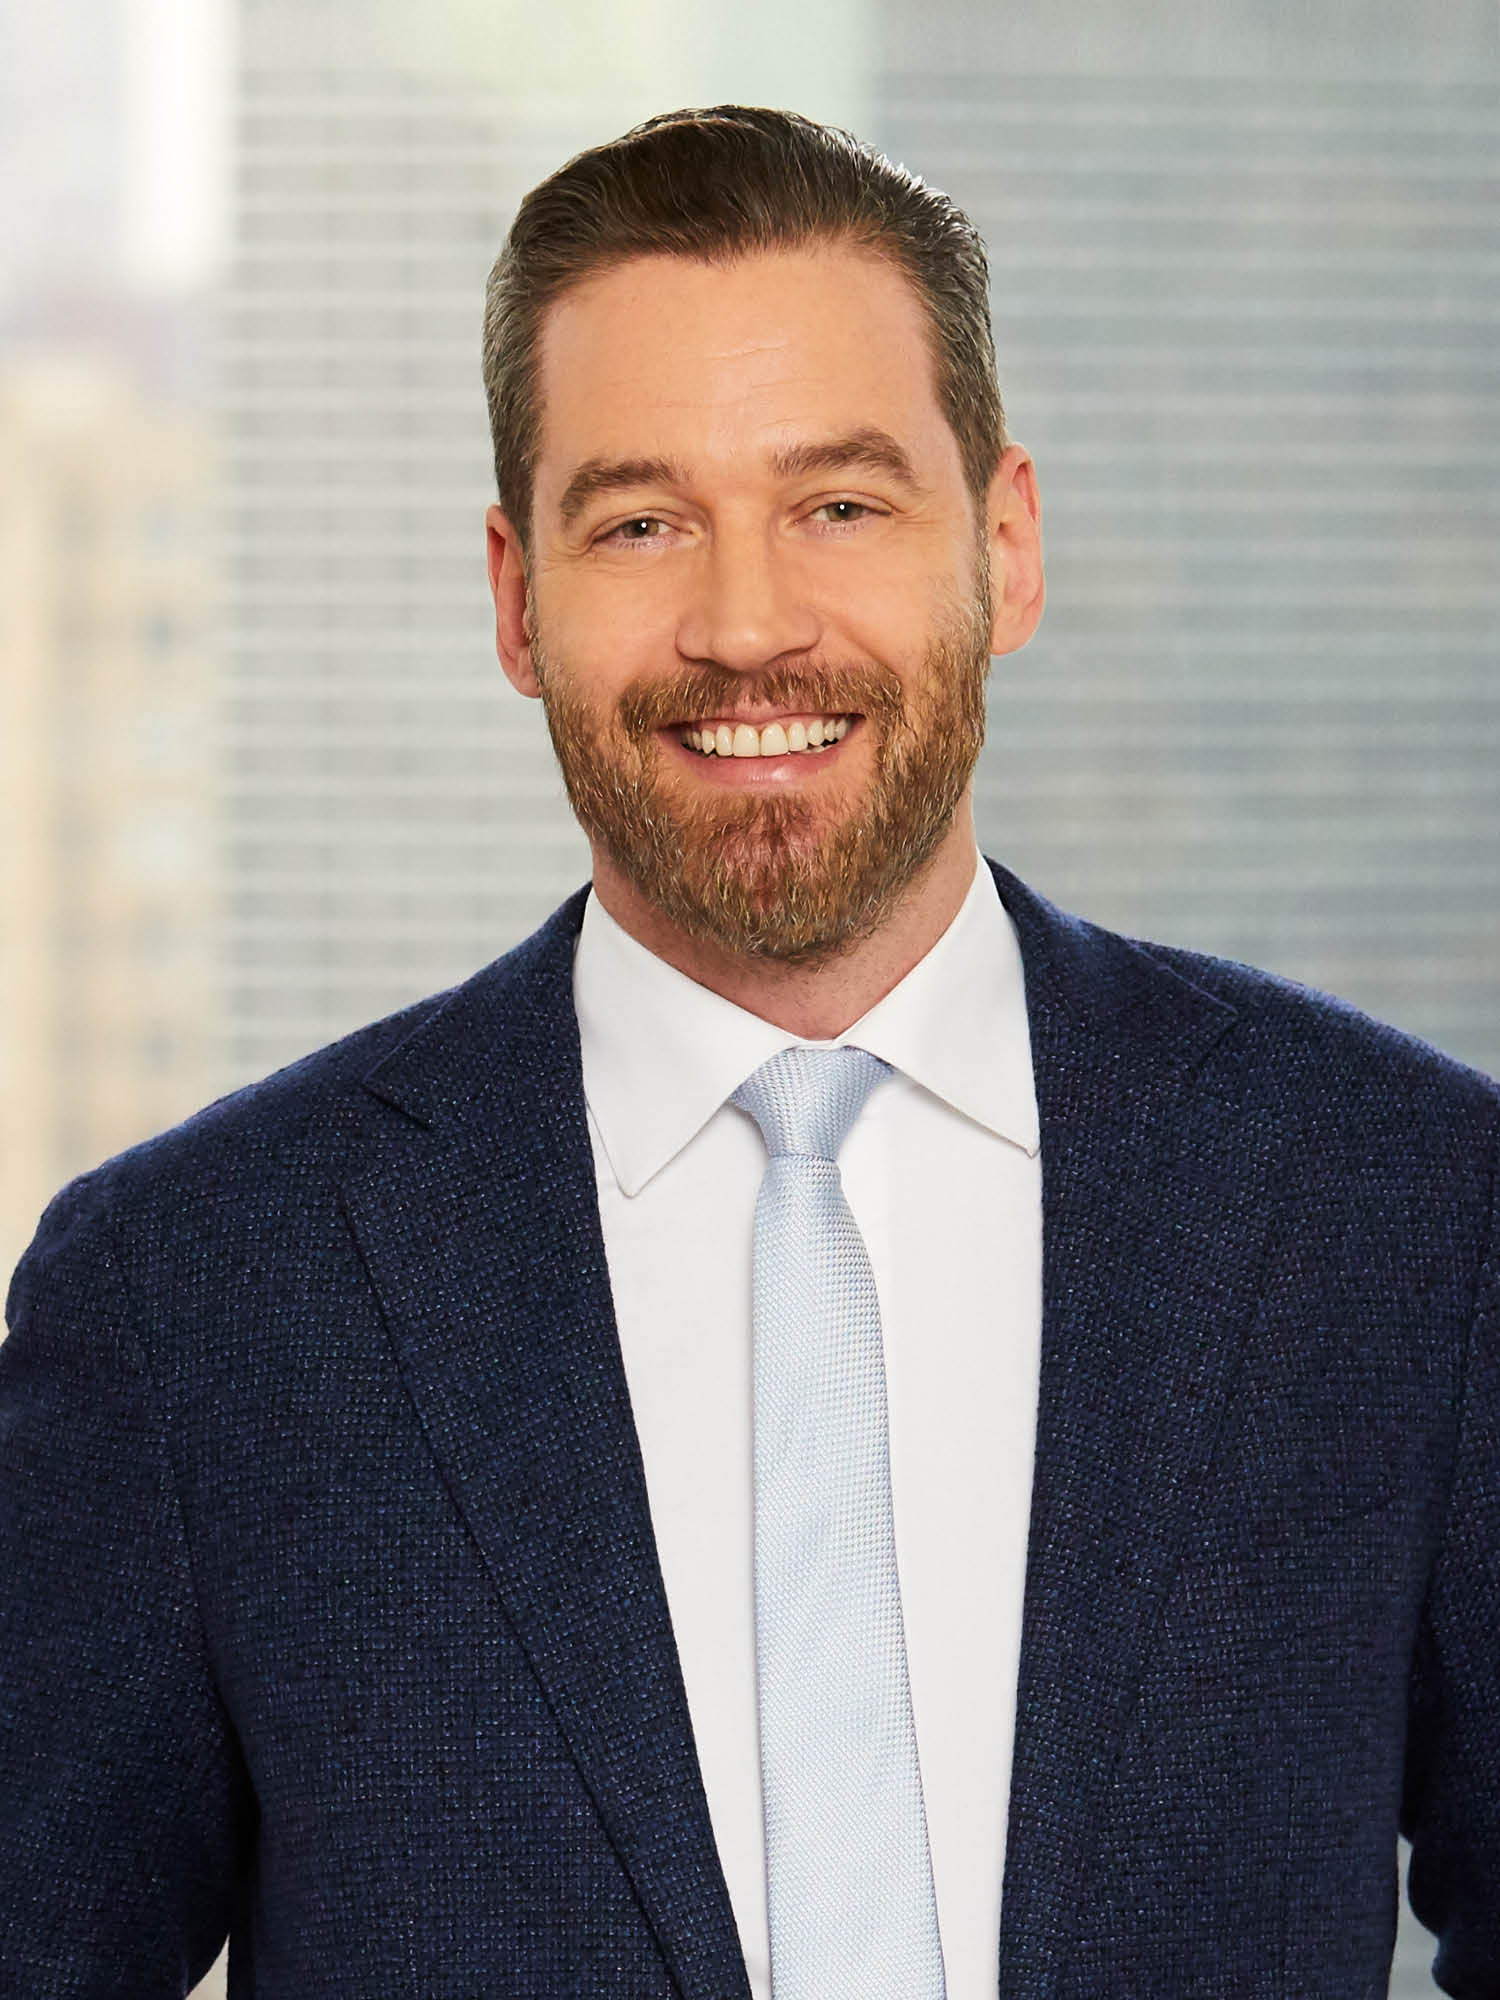 Patrick W Smith   Long Island City Real Estate Agent   Corcoran